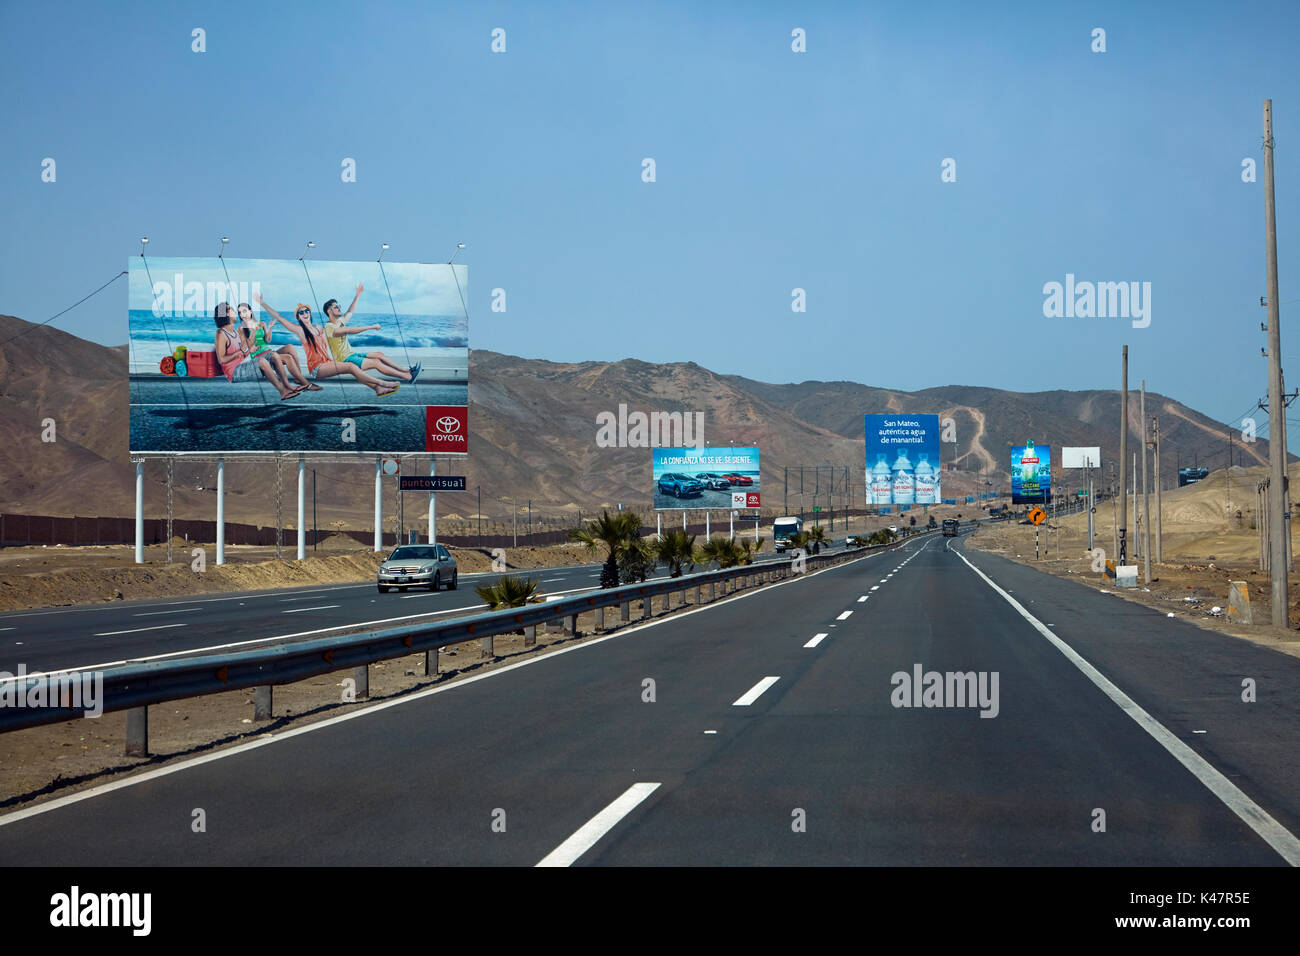 Pan-American Highway and billboards south of Lima, Peru, South America - Stock Image